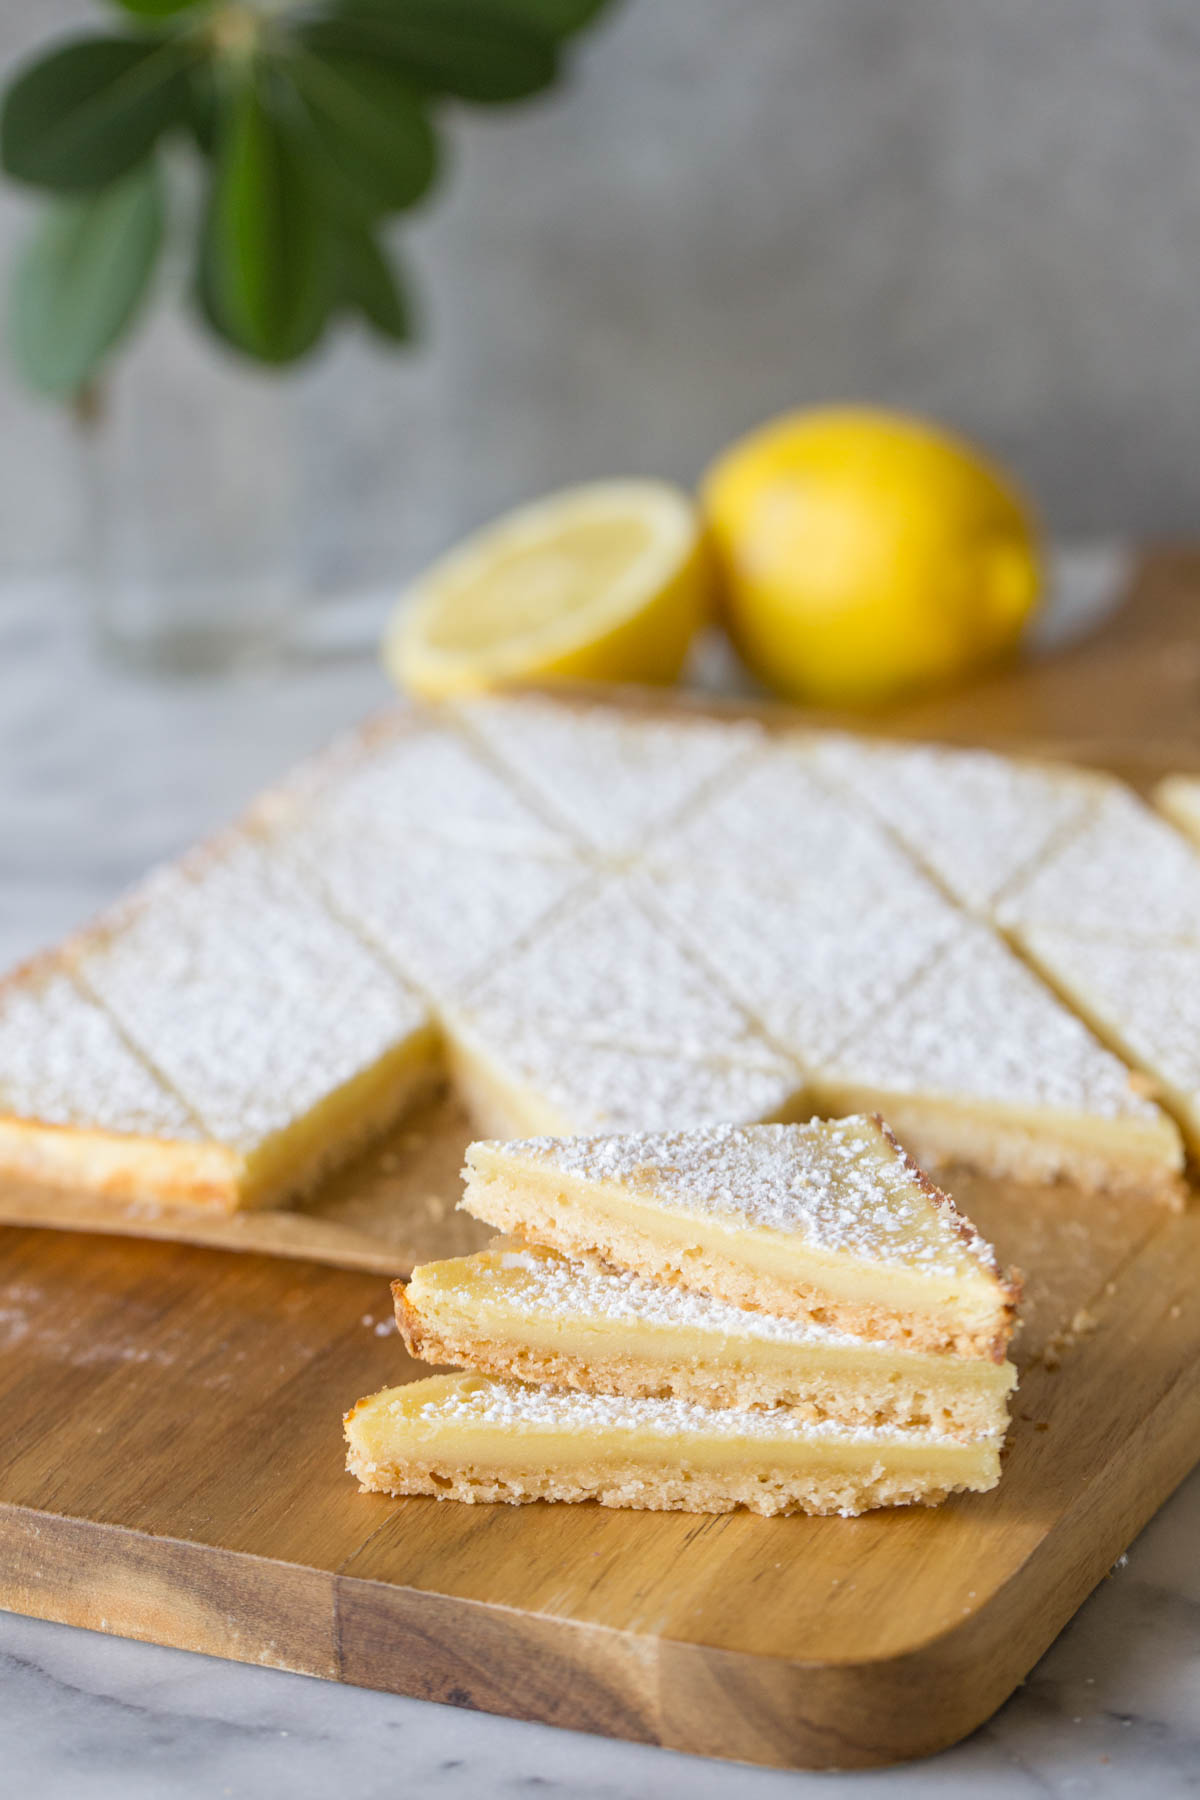 Three Swedish Lemon Bars stacked on a wooden cutting board, with more bars and lemons in the background.